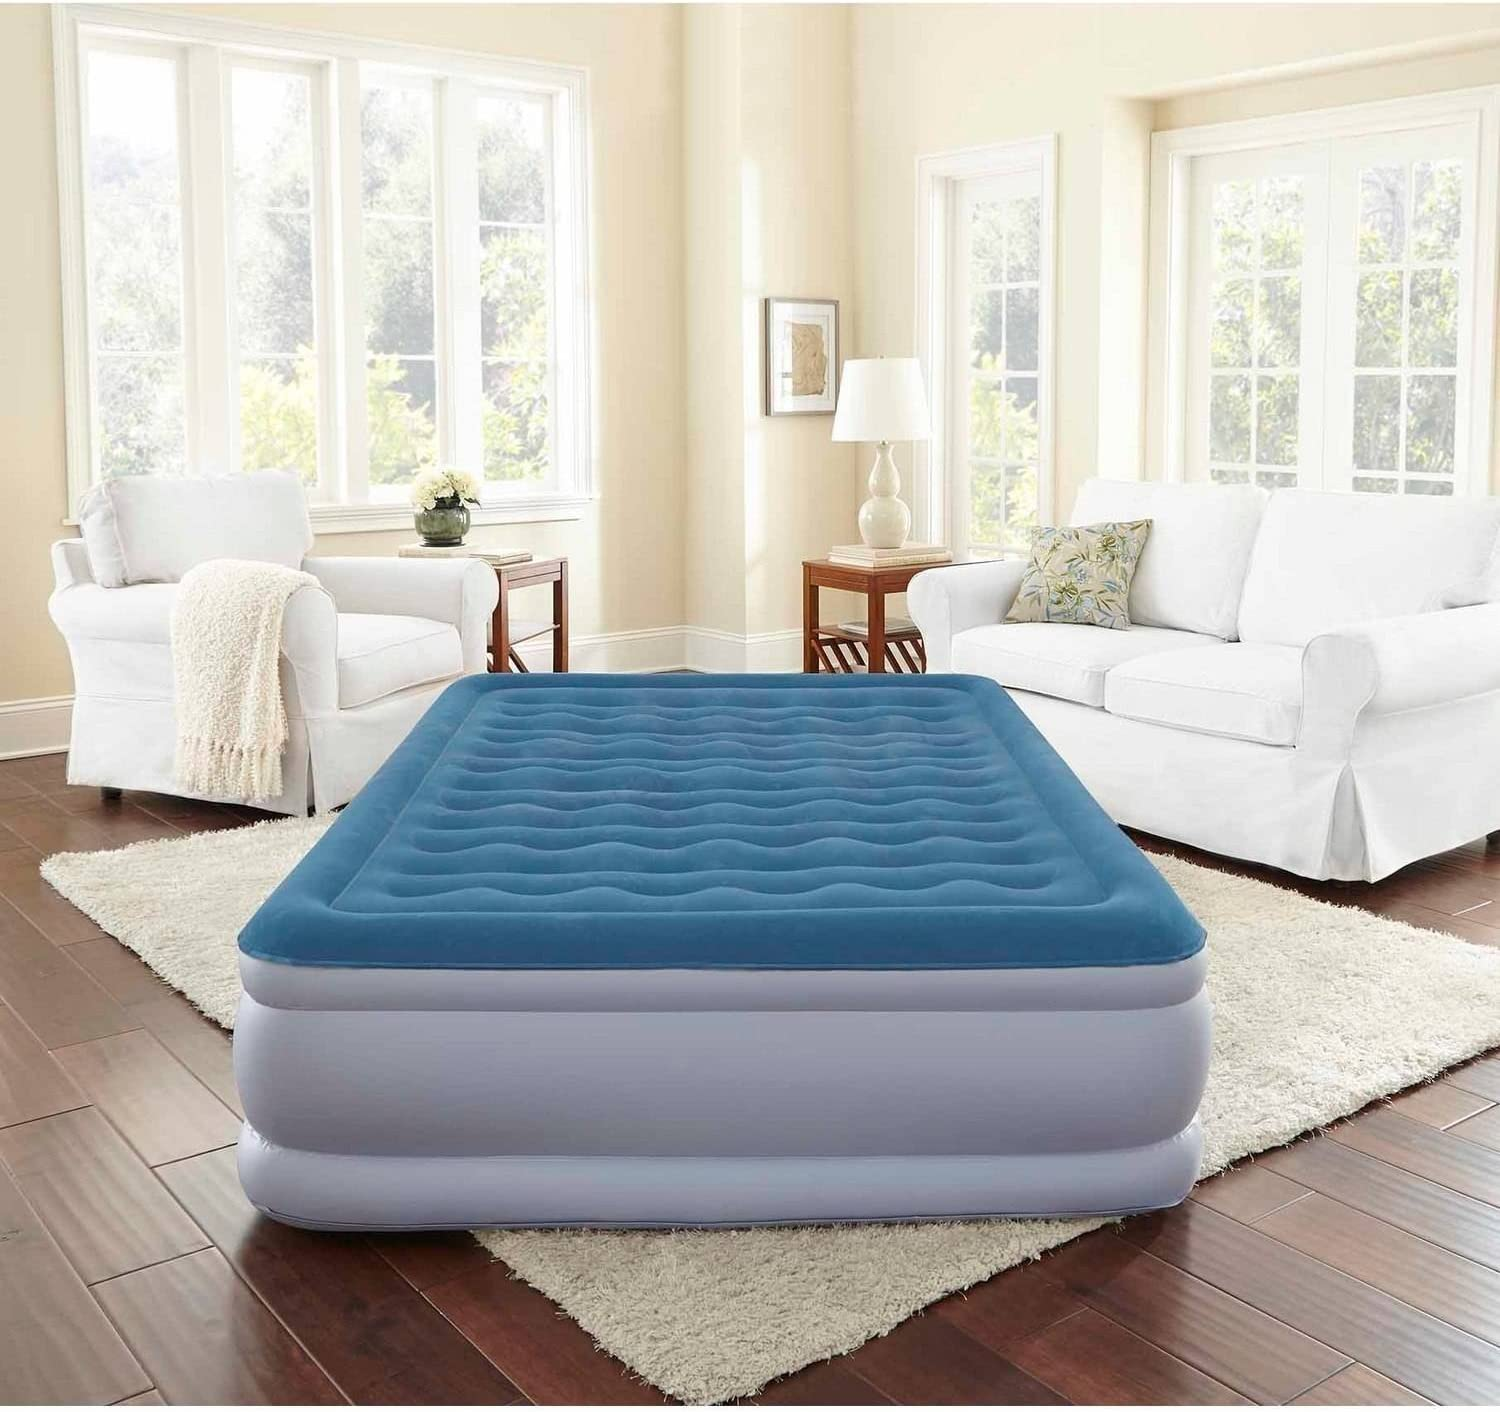 Simmons Beautyrest Extraordinaire iFlex Air Bed